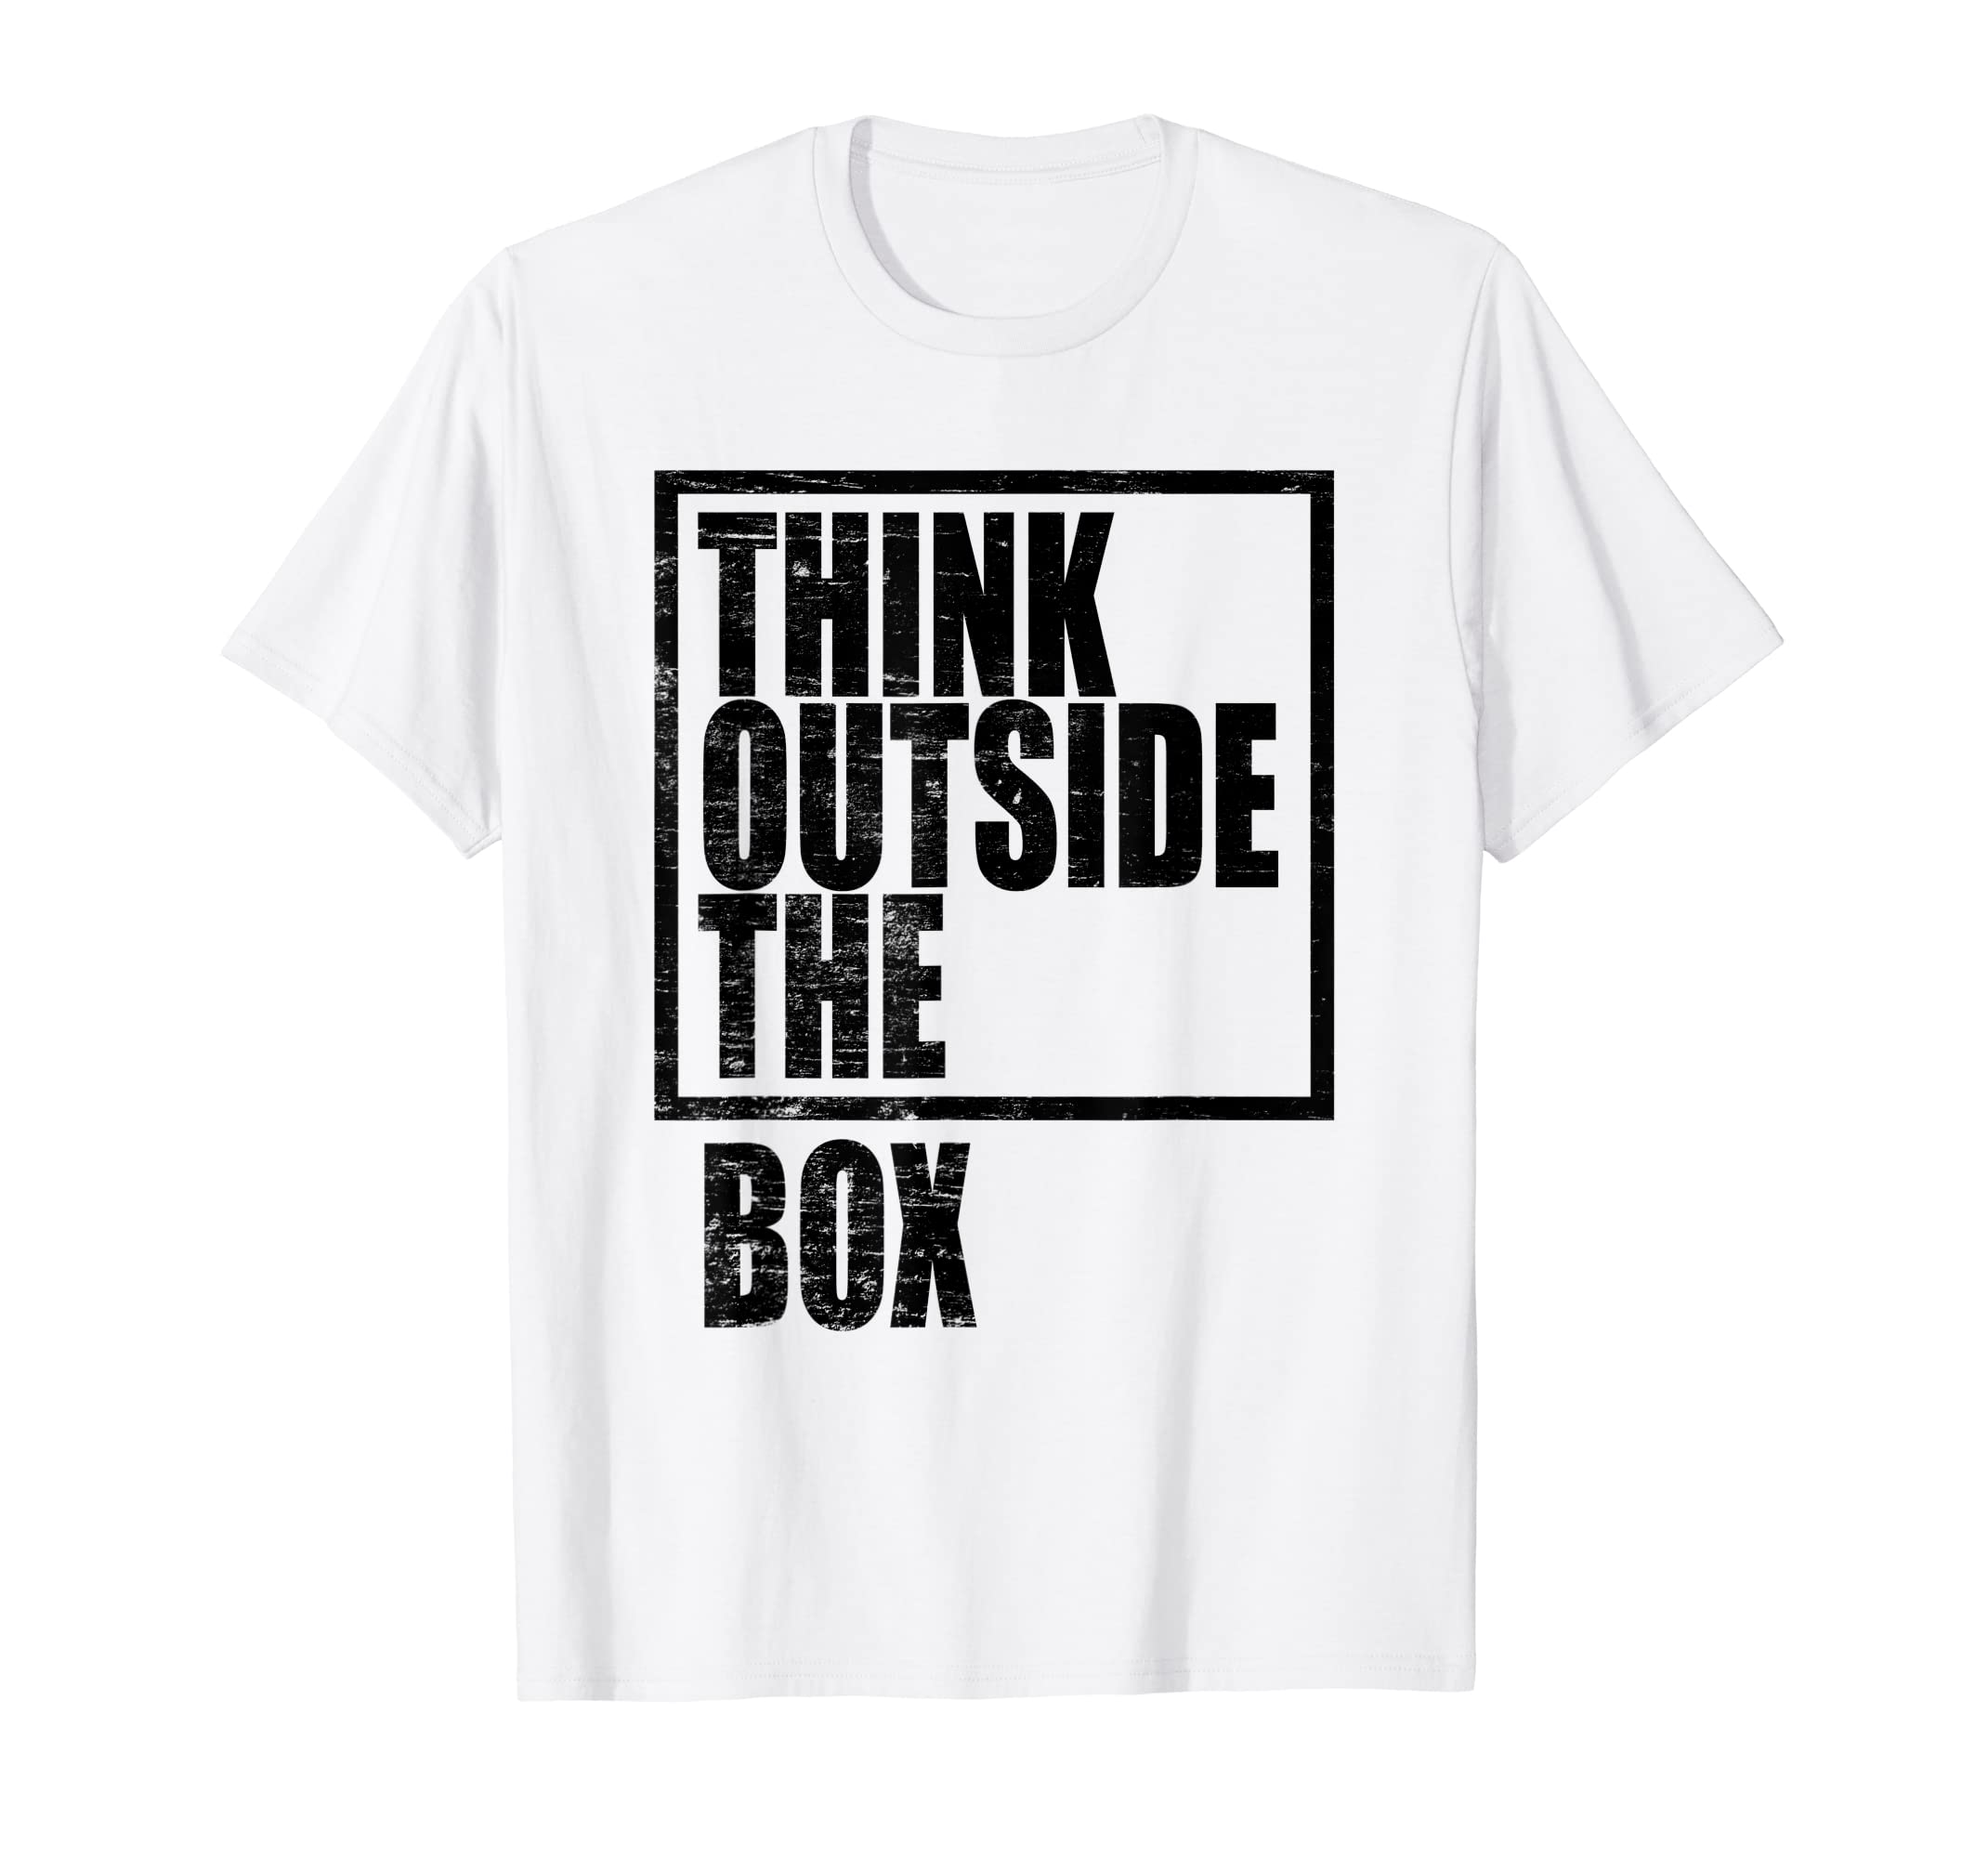 e3bd4f973 Amazon.com: Think Outside The Box T-Shirt for Men and Women: Clothing